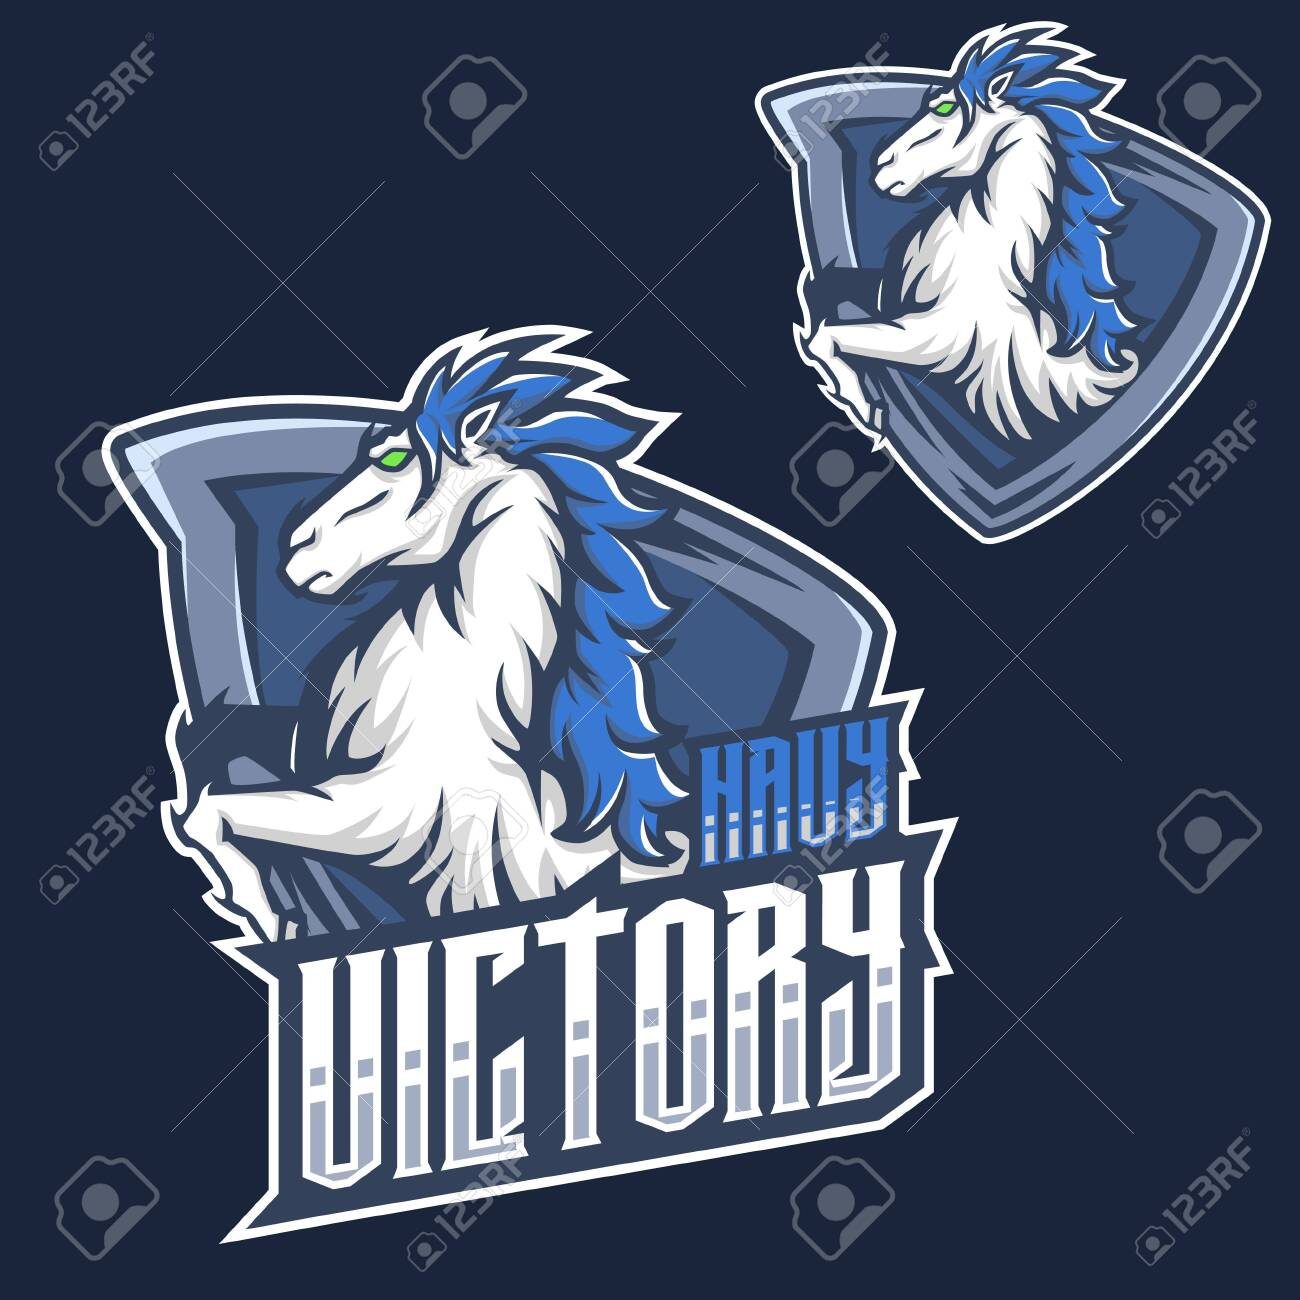 Mascot F Mustang Horse Head Esport Gaming Mascot Logo Template Royalty Free Cliparts Vectors And Stock Illustration Image 124368014